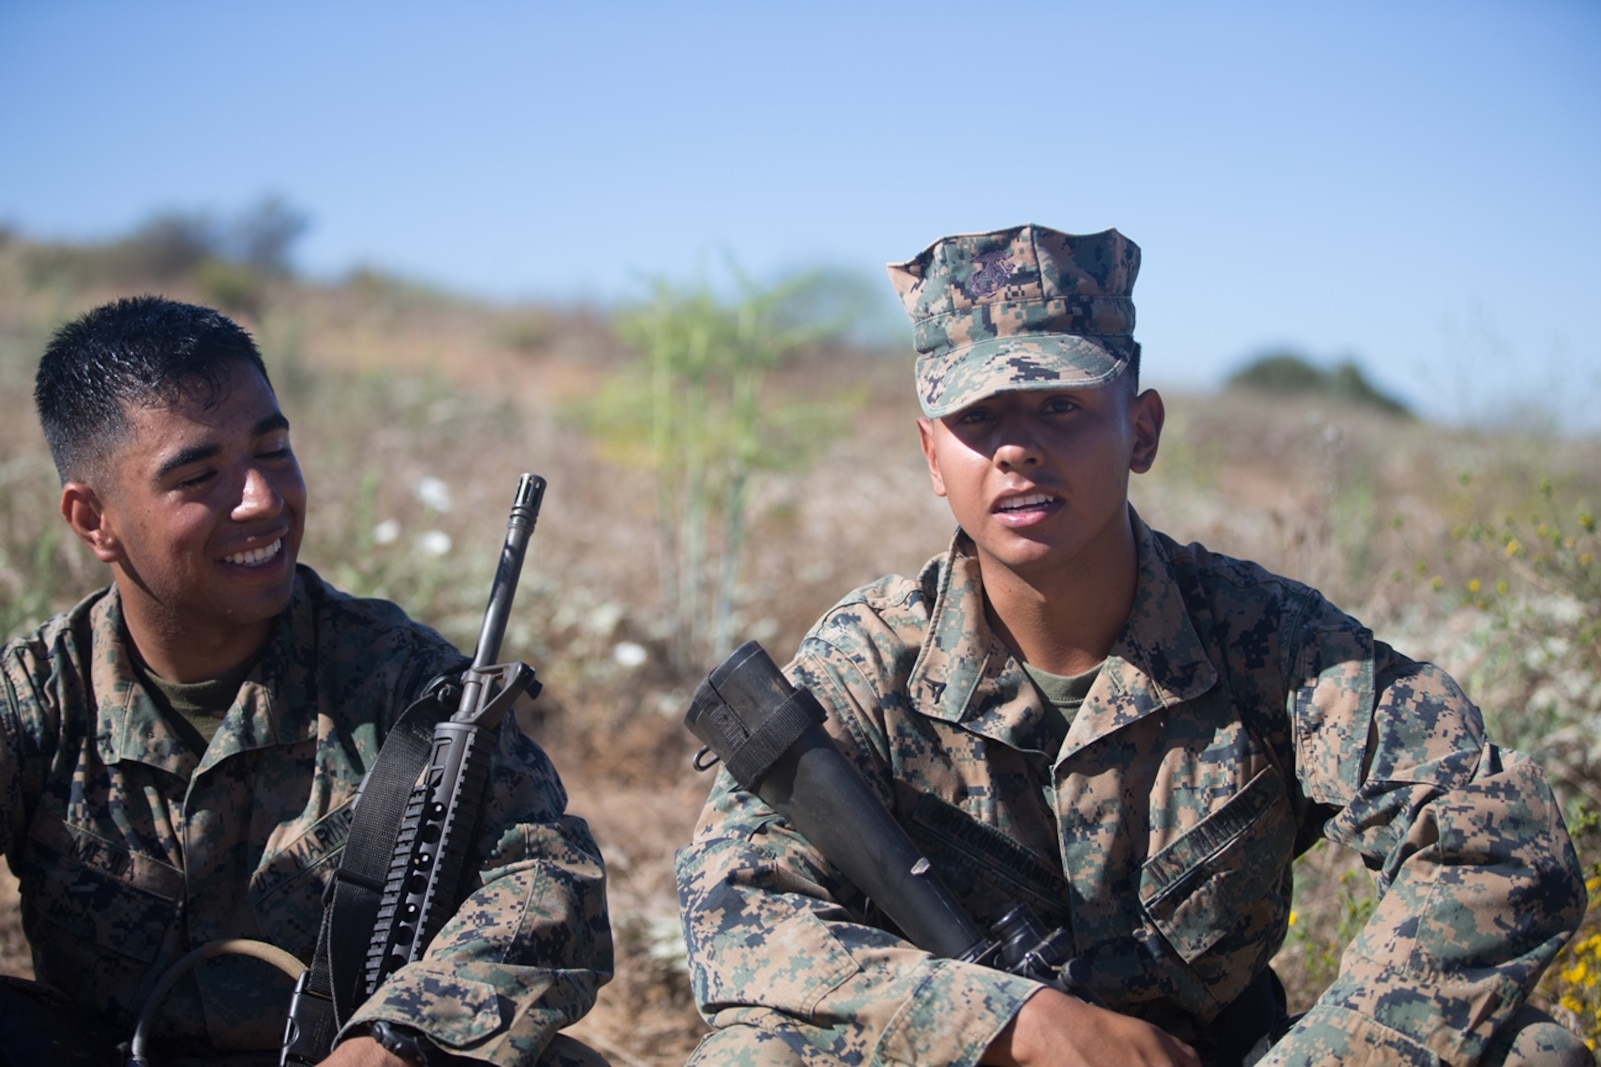 U.S. Marine Lance Cpls. Luis Orozohernandez and Lance Cpl. Luis Mejia, motor transportation operators for Combat Logistics Battalion 5, Headquarters Regiment, 1st Marine Logistics Group take a break during a seven mile conditioning hike on Camp Pendleton, Calif., June 27, 2017. The Marines have multiple conditioning hikes to prepare for Mountain Exercise 4-17 which will be conducted at the Marine Corps Mountain Warfare Training Center in Bridgeport, Calif. (U.S. Marine Corps photo by Lance Cpl. Timothy Shoemaker)